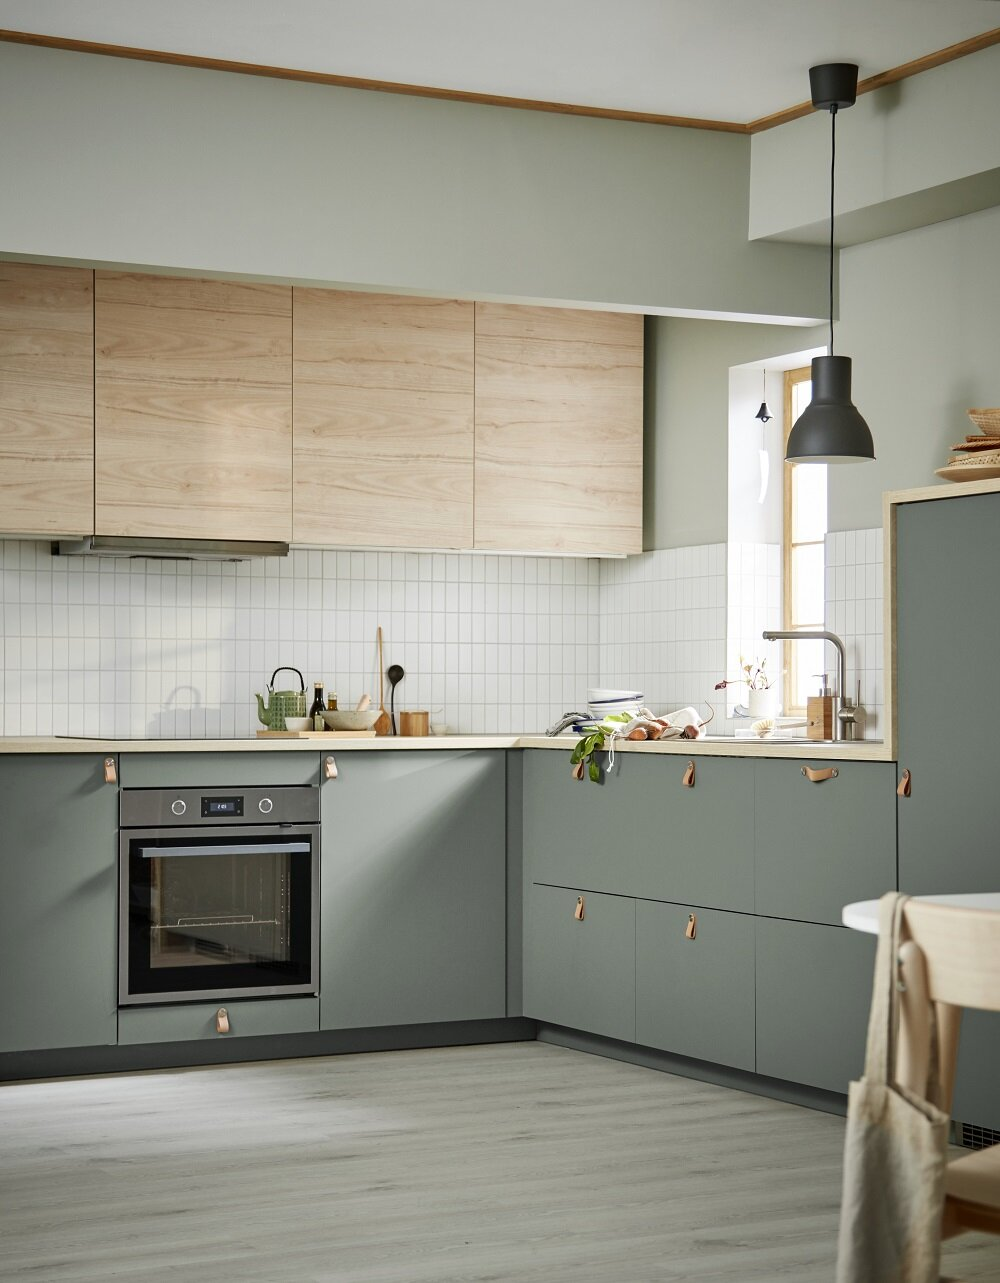 sage green cabinets and white subway tile back splash in a scandinavian kitchen